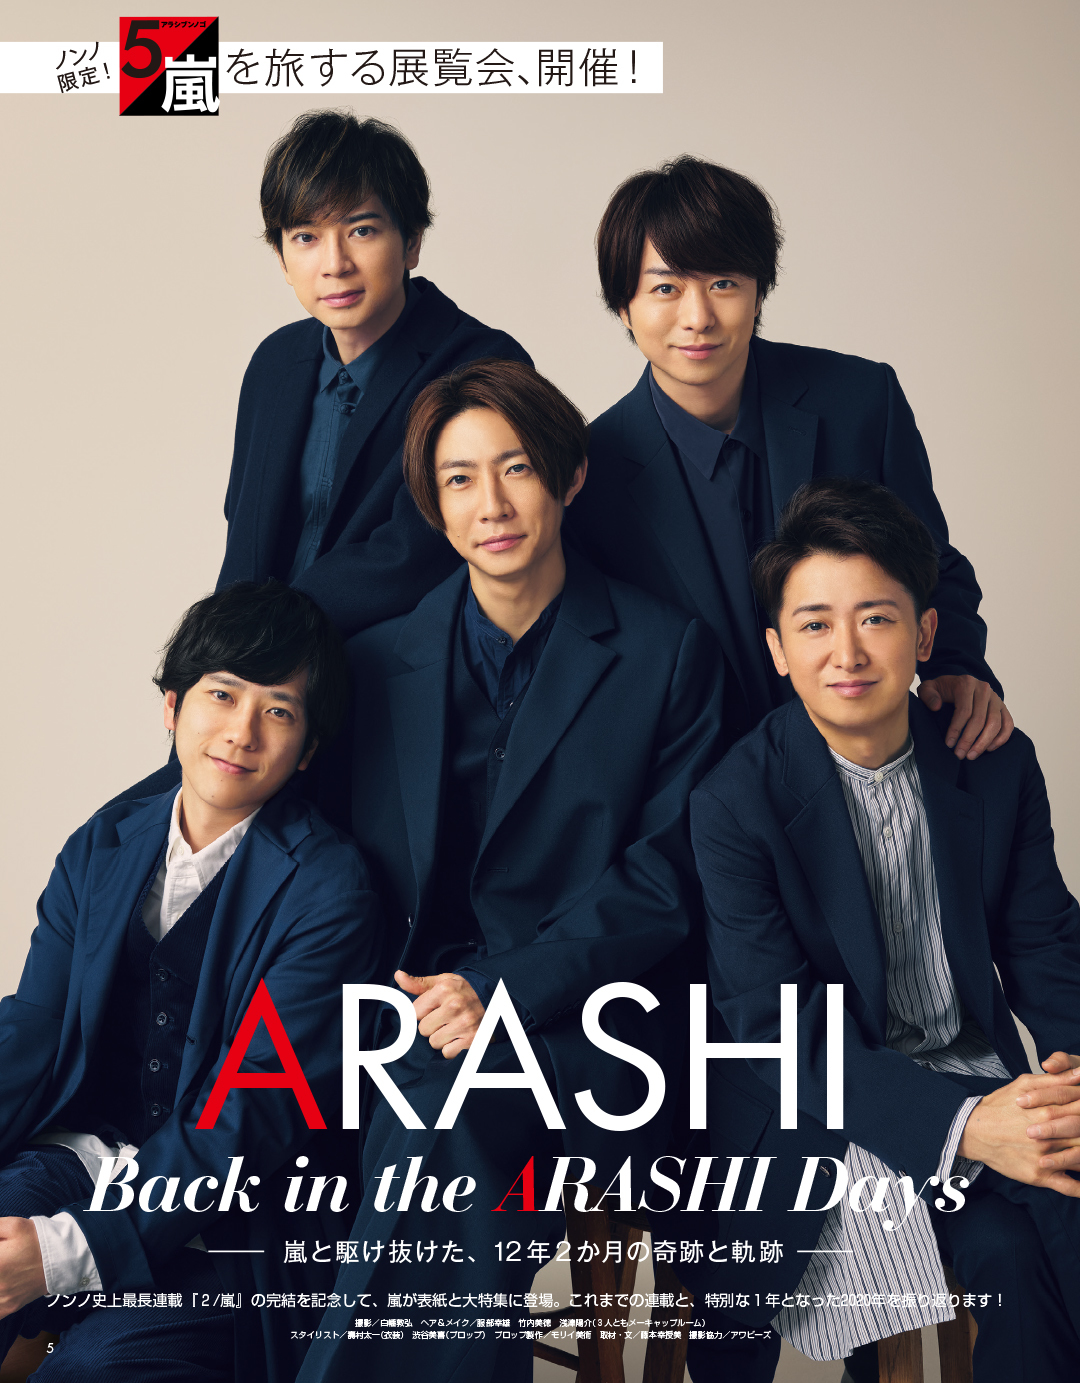 ARASHI Back in the ARASHI Days